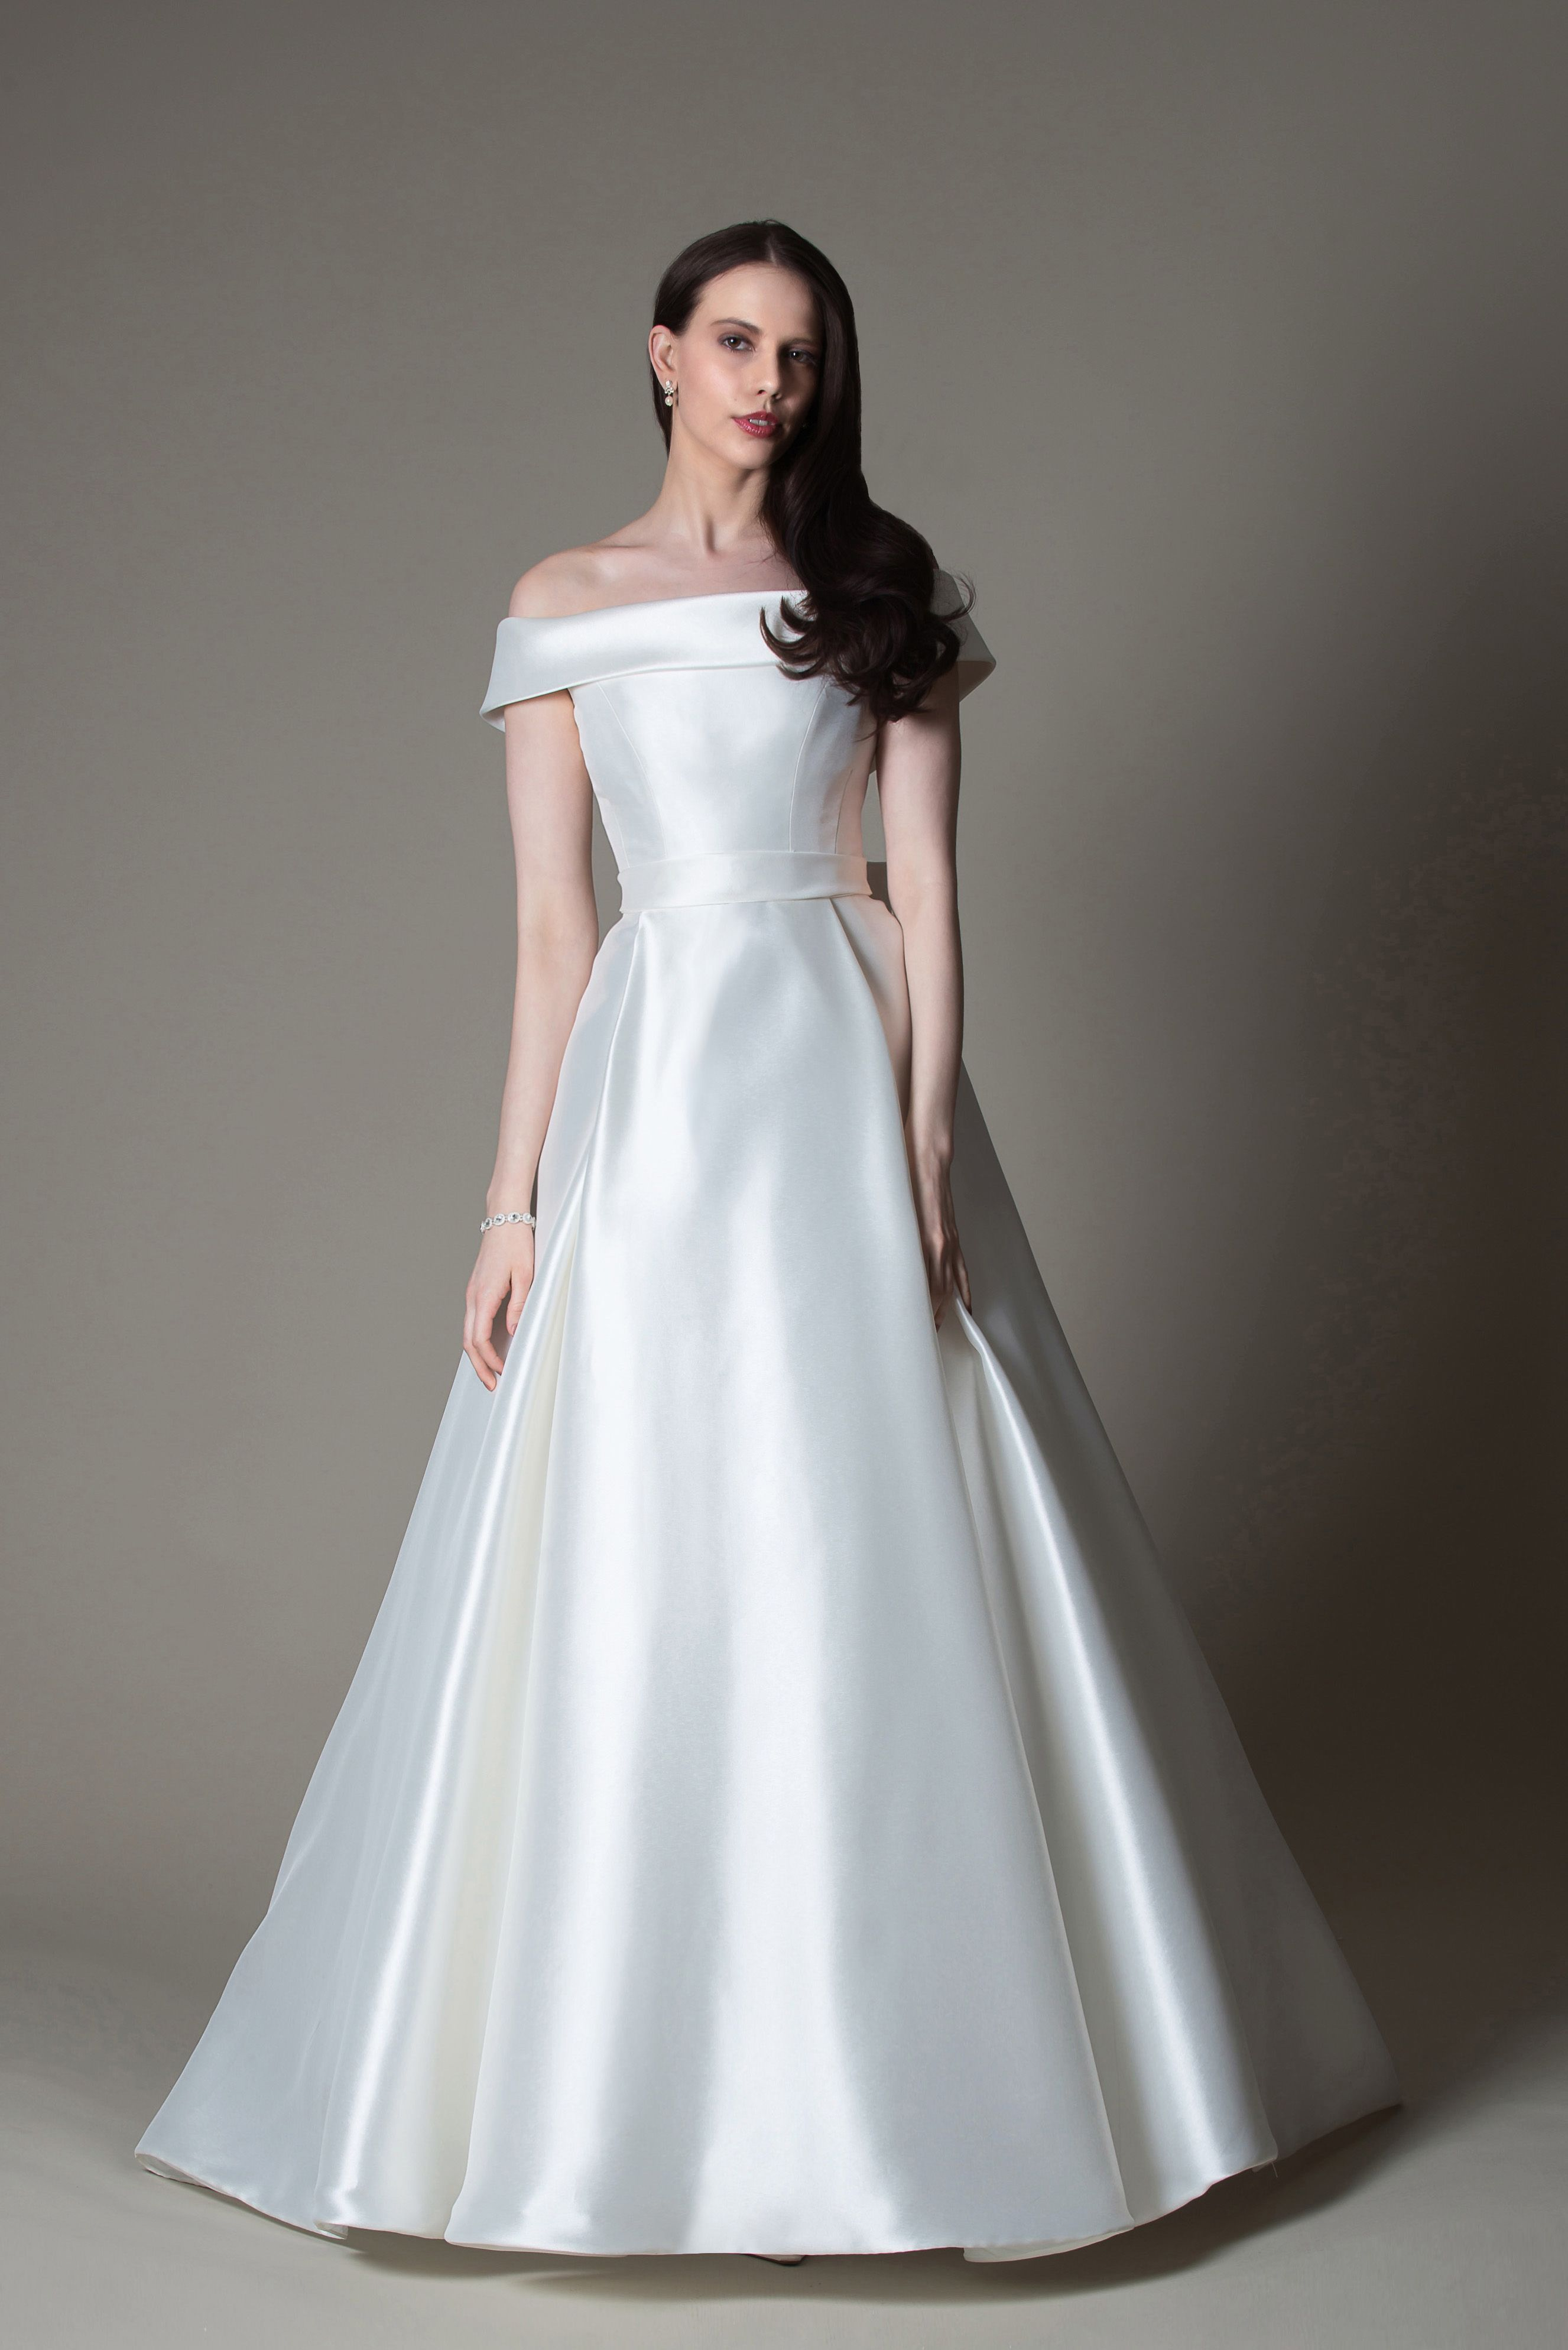 Stunning Elegant Millie Is A Must Try Dress From The New Collection All Alan Hannah Dresses